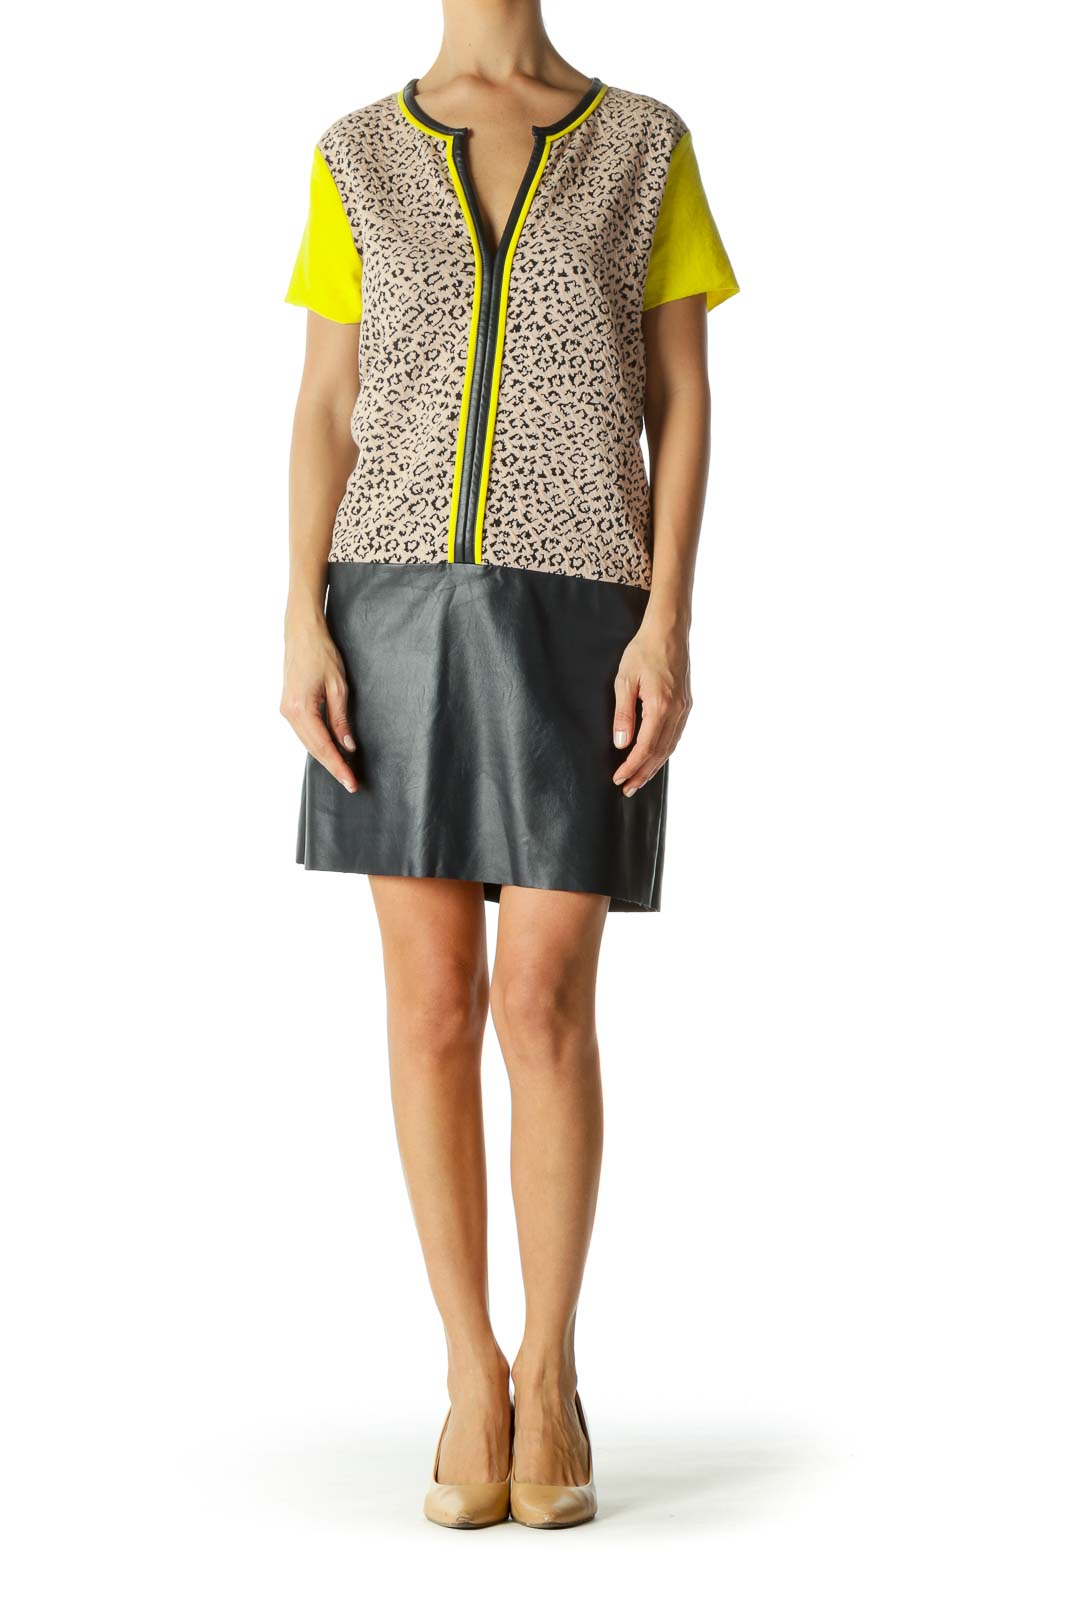 Beige Black Yellow Animal Textured Knit Contrasting Piping Mixed-Media Dress